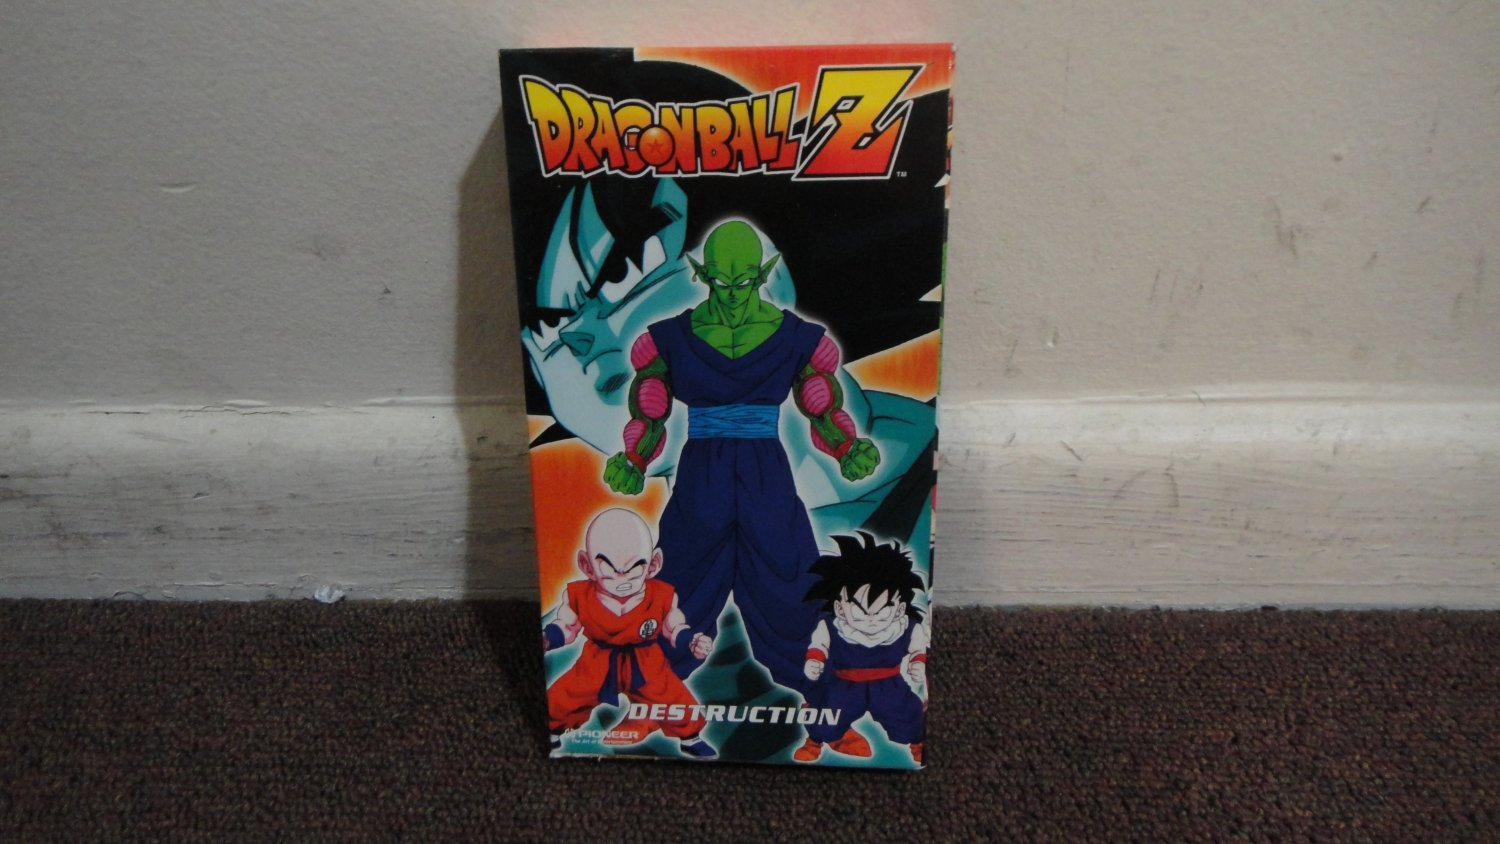 DRAGONBALL Z - DESTRUCTION. used VHS tape. Nice Condition. LOOK!!!